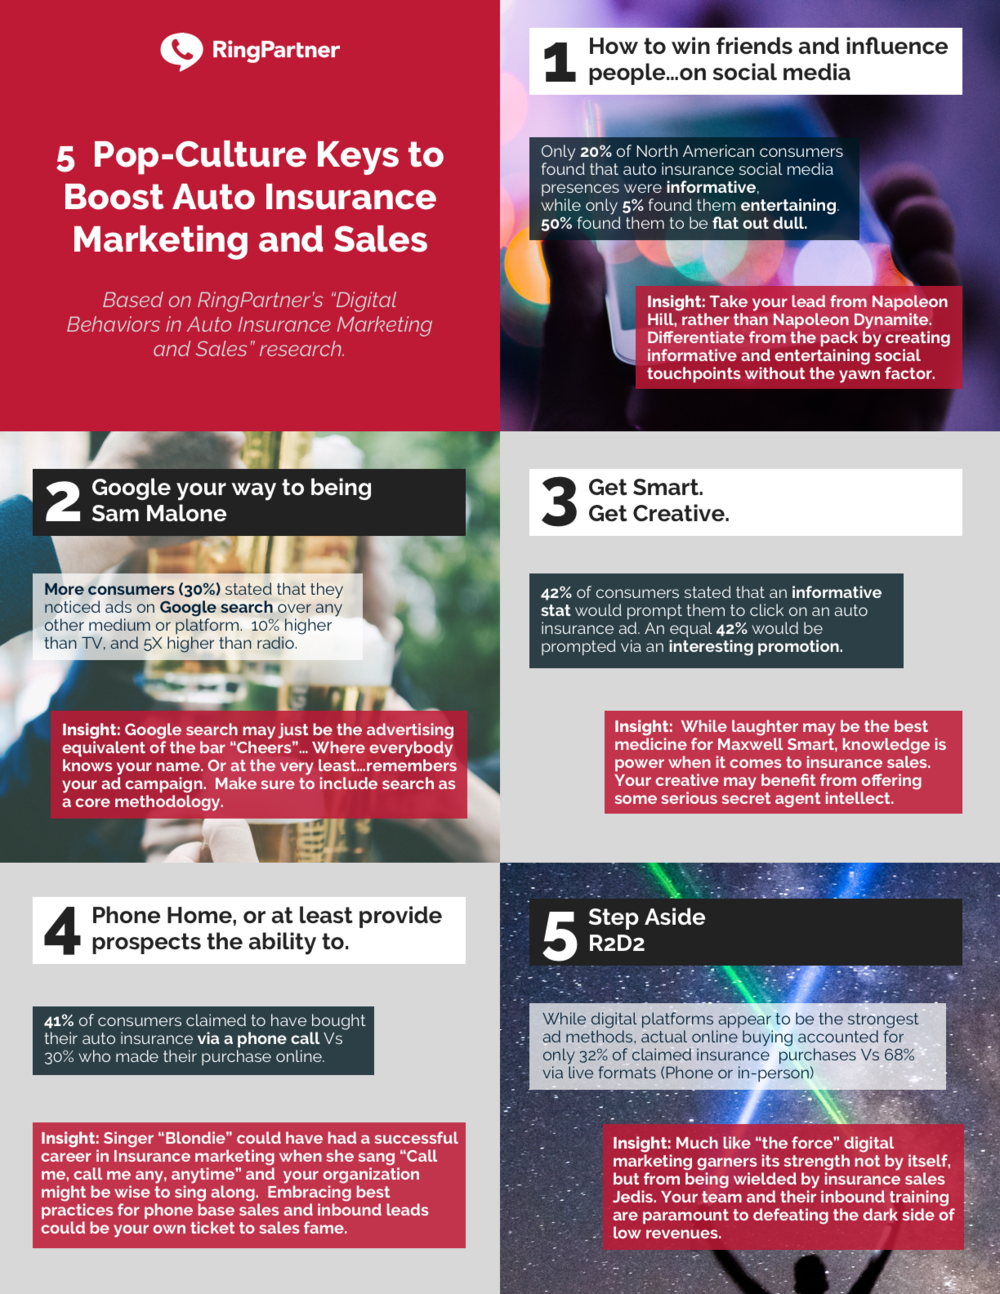 RingPartner Auto Insurance Consumer Behavior - 5 Pop Culture Keys.png